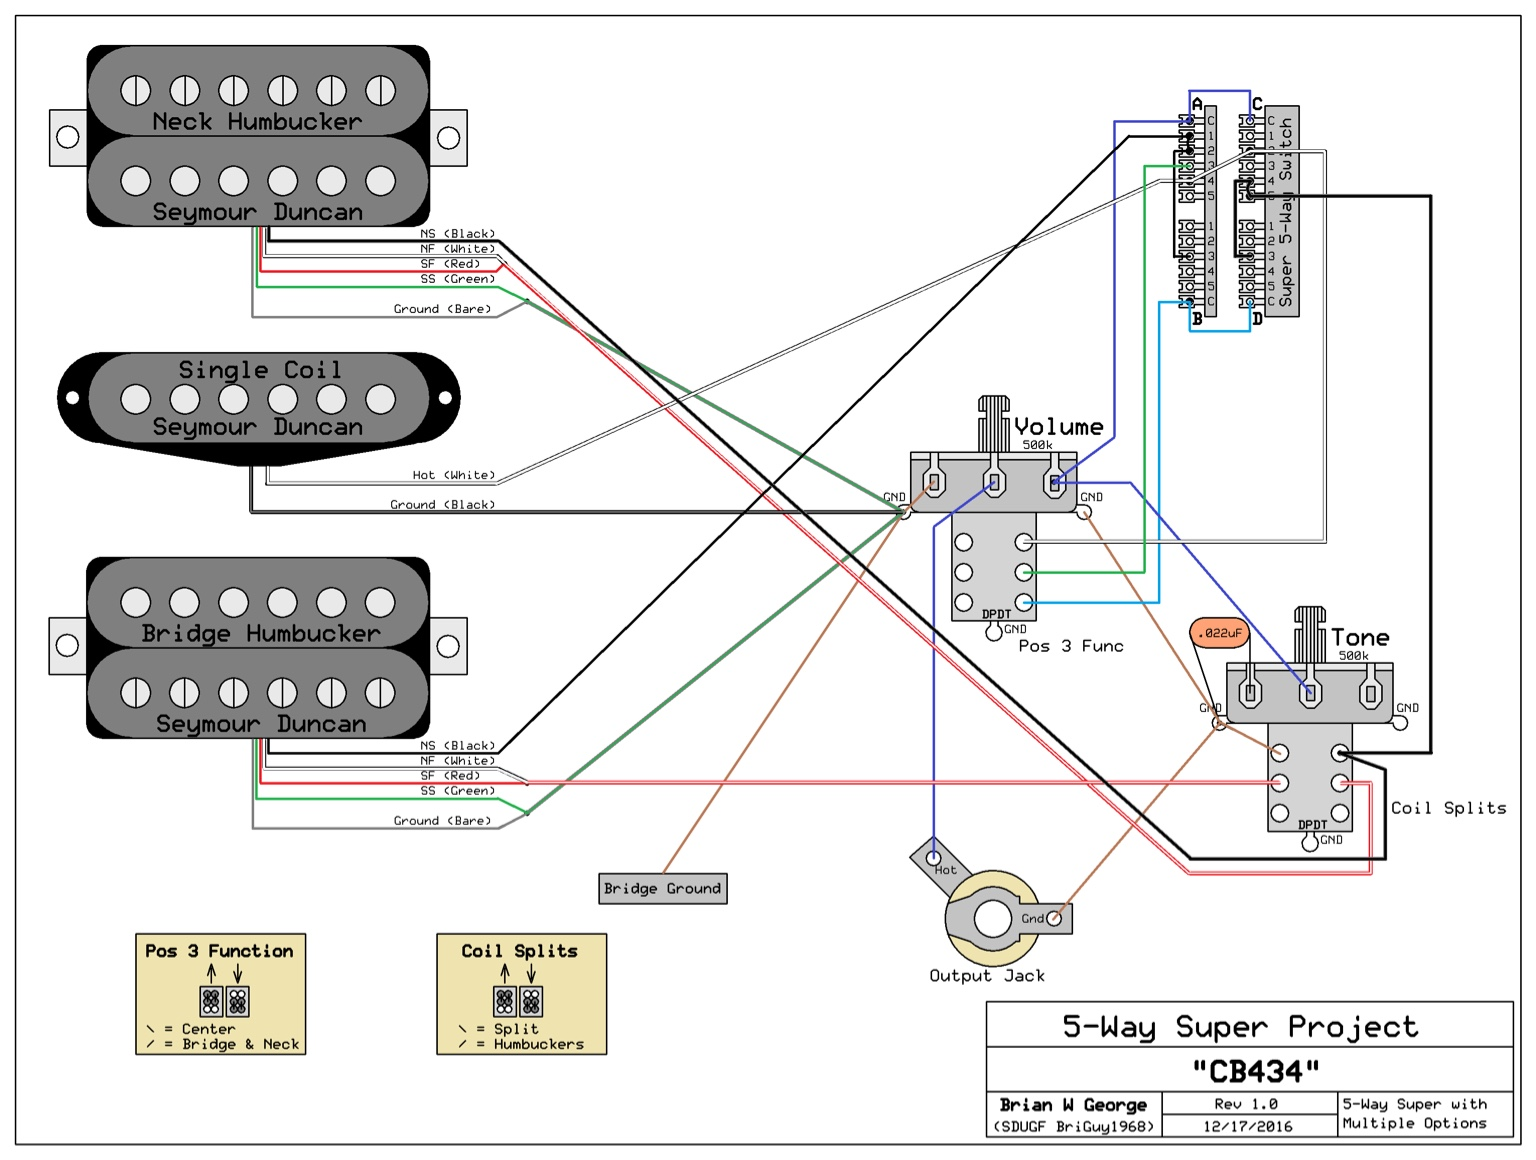 5 Way Super Switch Wiring Diagram Wiring Diagram DIY Wiring 2 Humbuckers And A Single Pick Up On To A 5 Way Switch  sc 1 st  Zielgate.com : strat super switch wiring diagrams - yogabreezes.com